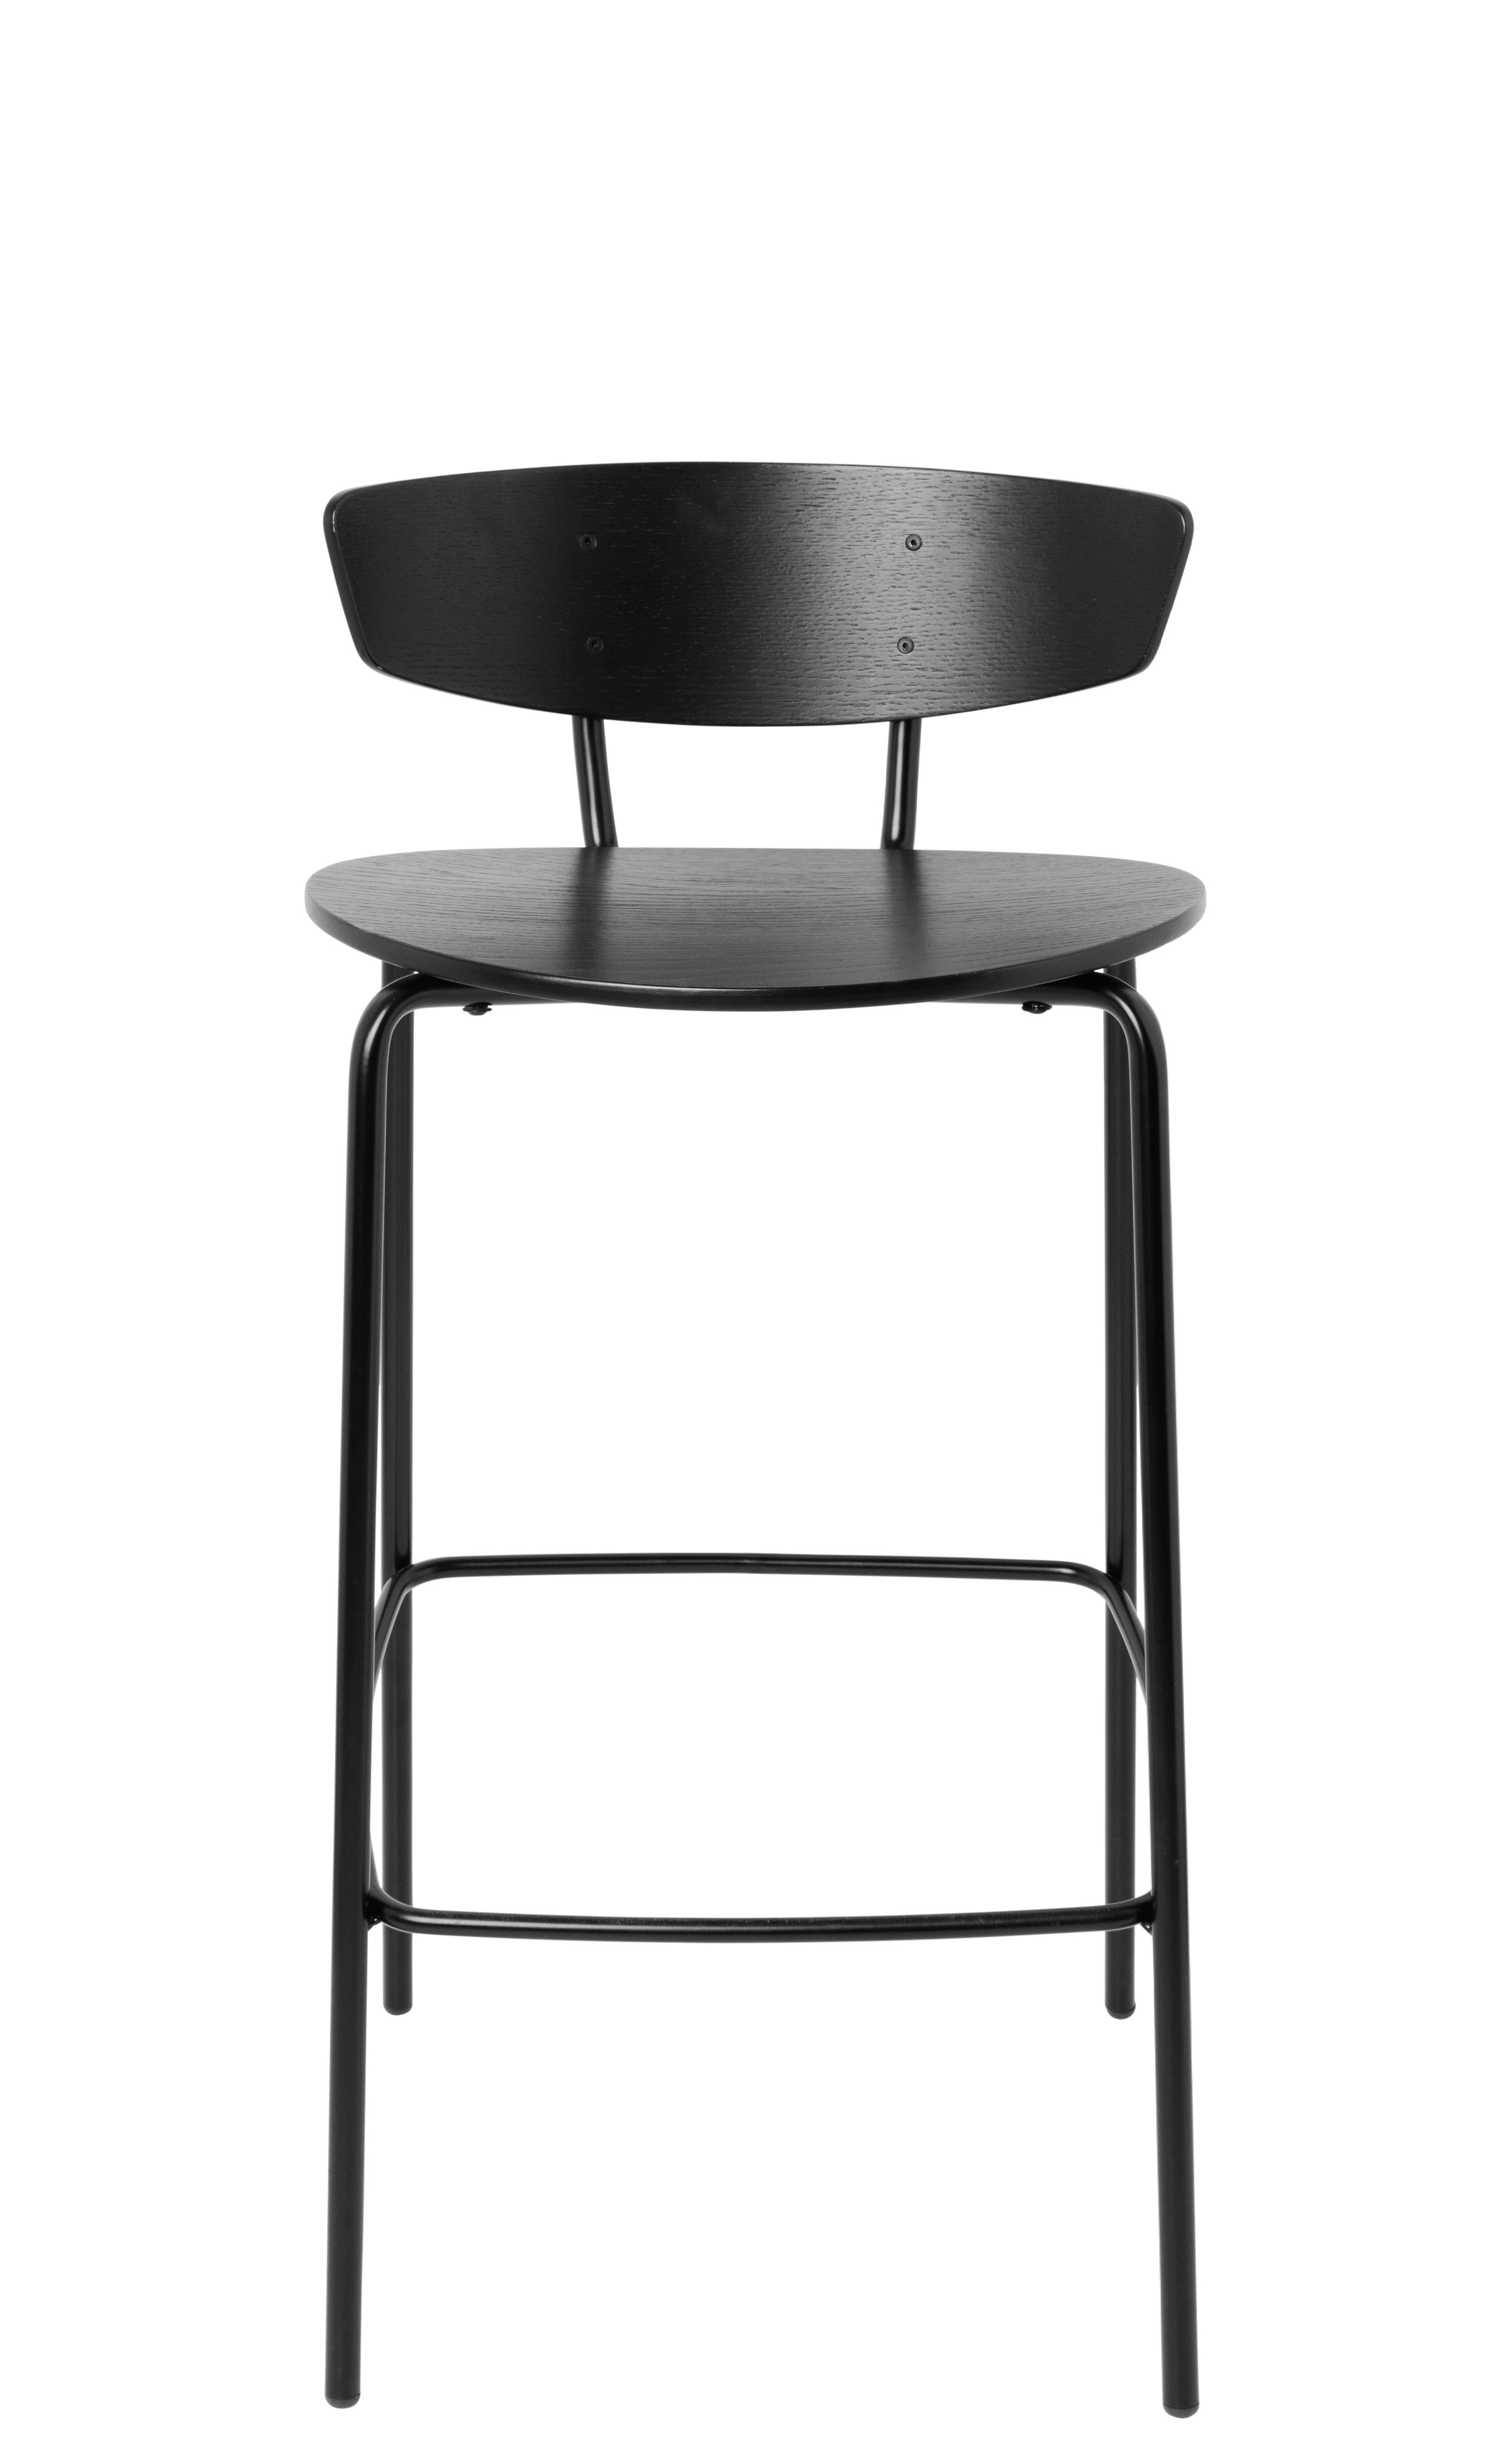 Furniture - Bar Stools - Herman Bar chair - / Low - H 64 cm by Ferm Living - Large H 64 cm / Black - Epoxy lacquered steel, Lacquered oak plywood